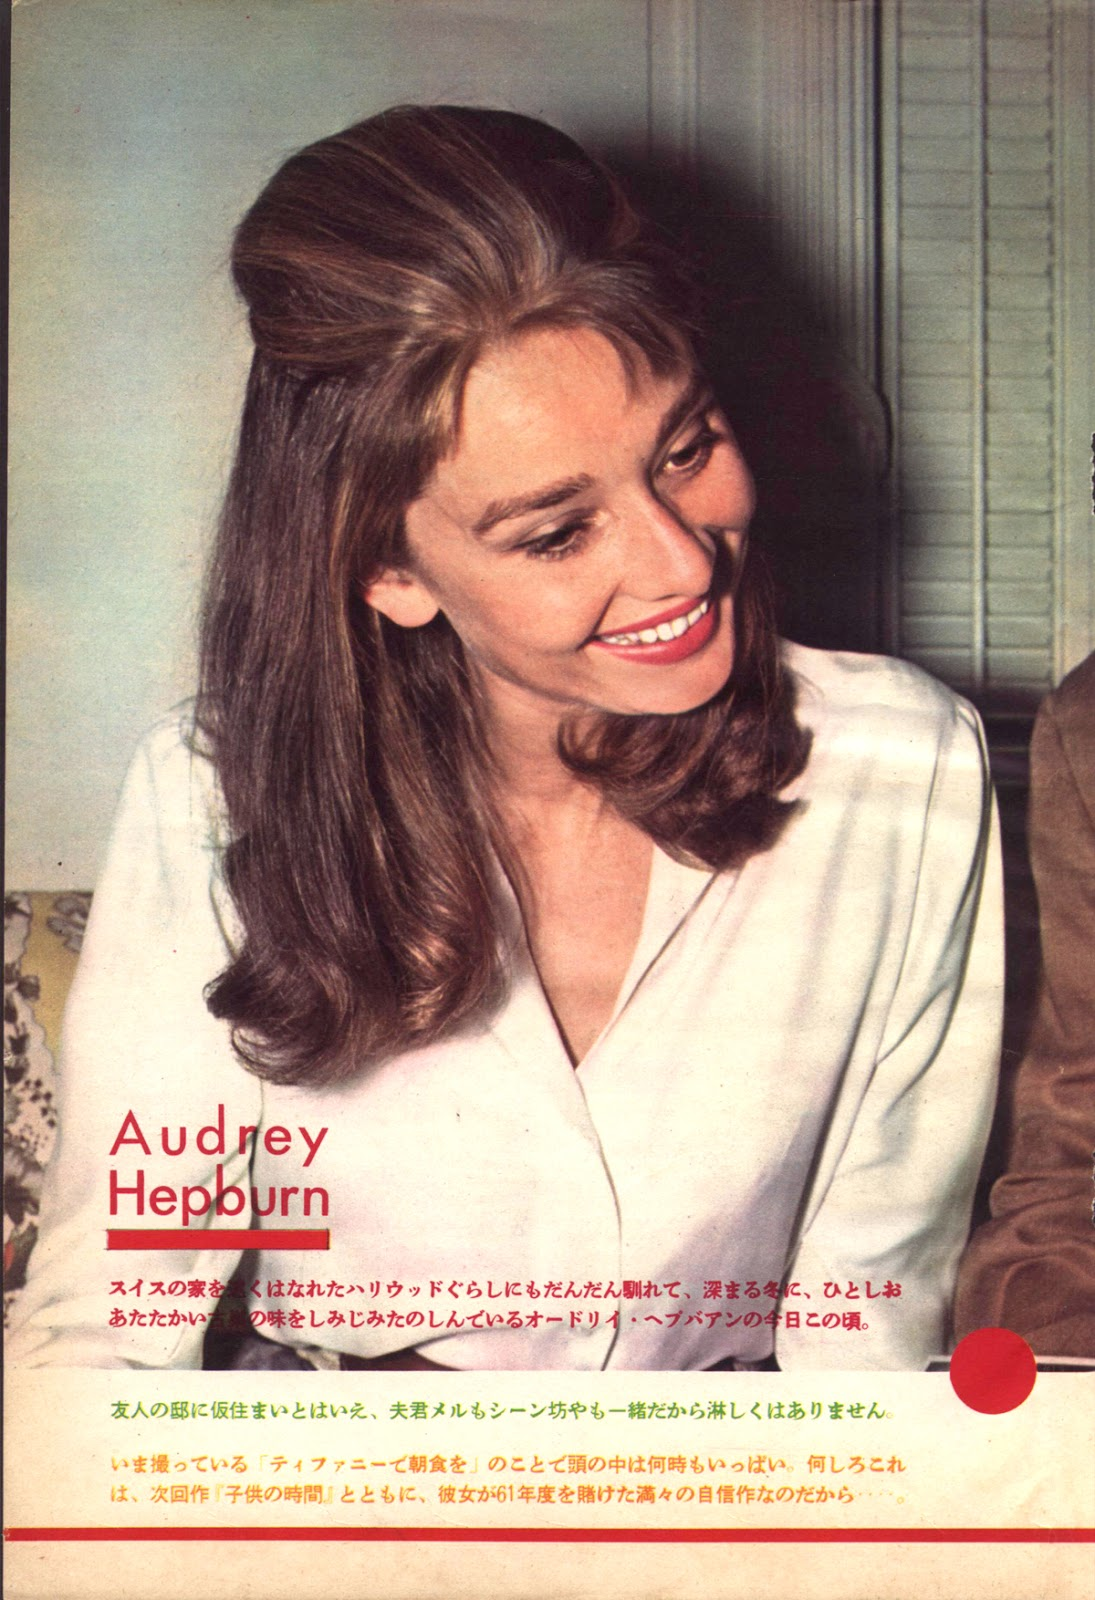 audrey hepburn hairstyle pictures audrey hepburn half up half down    Audrey Hepburn Hair Down